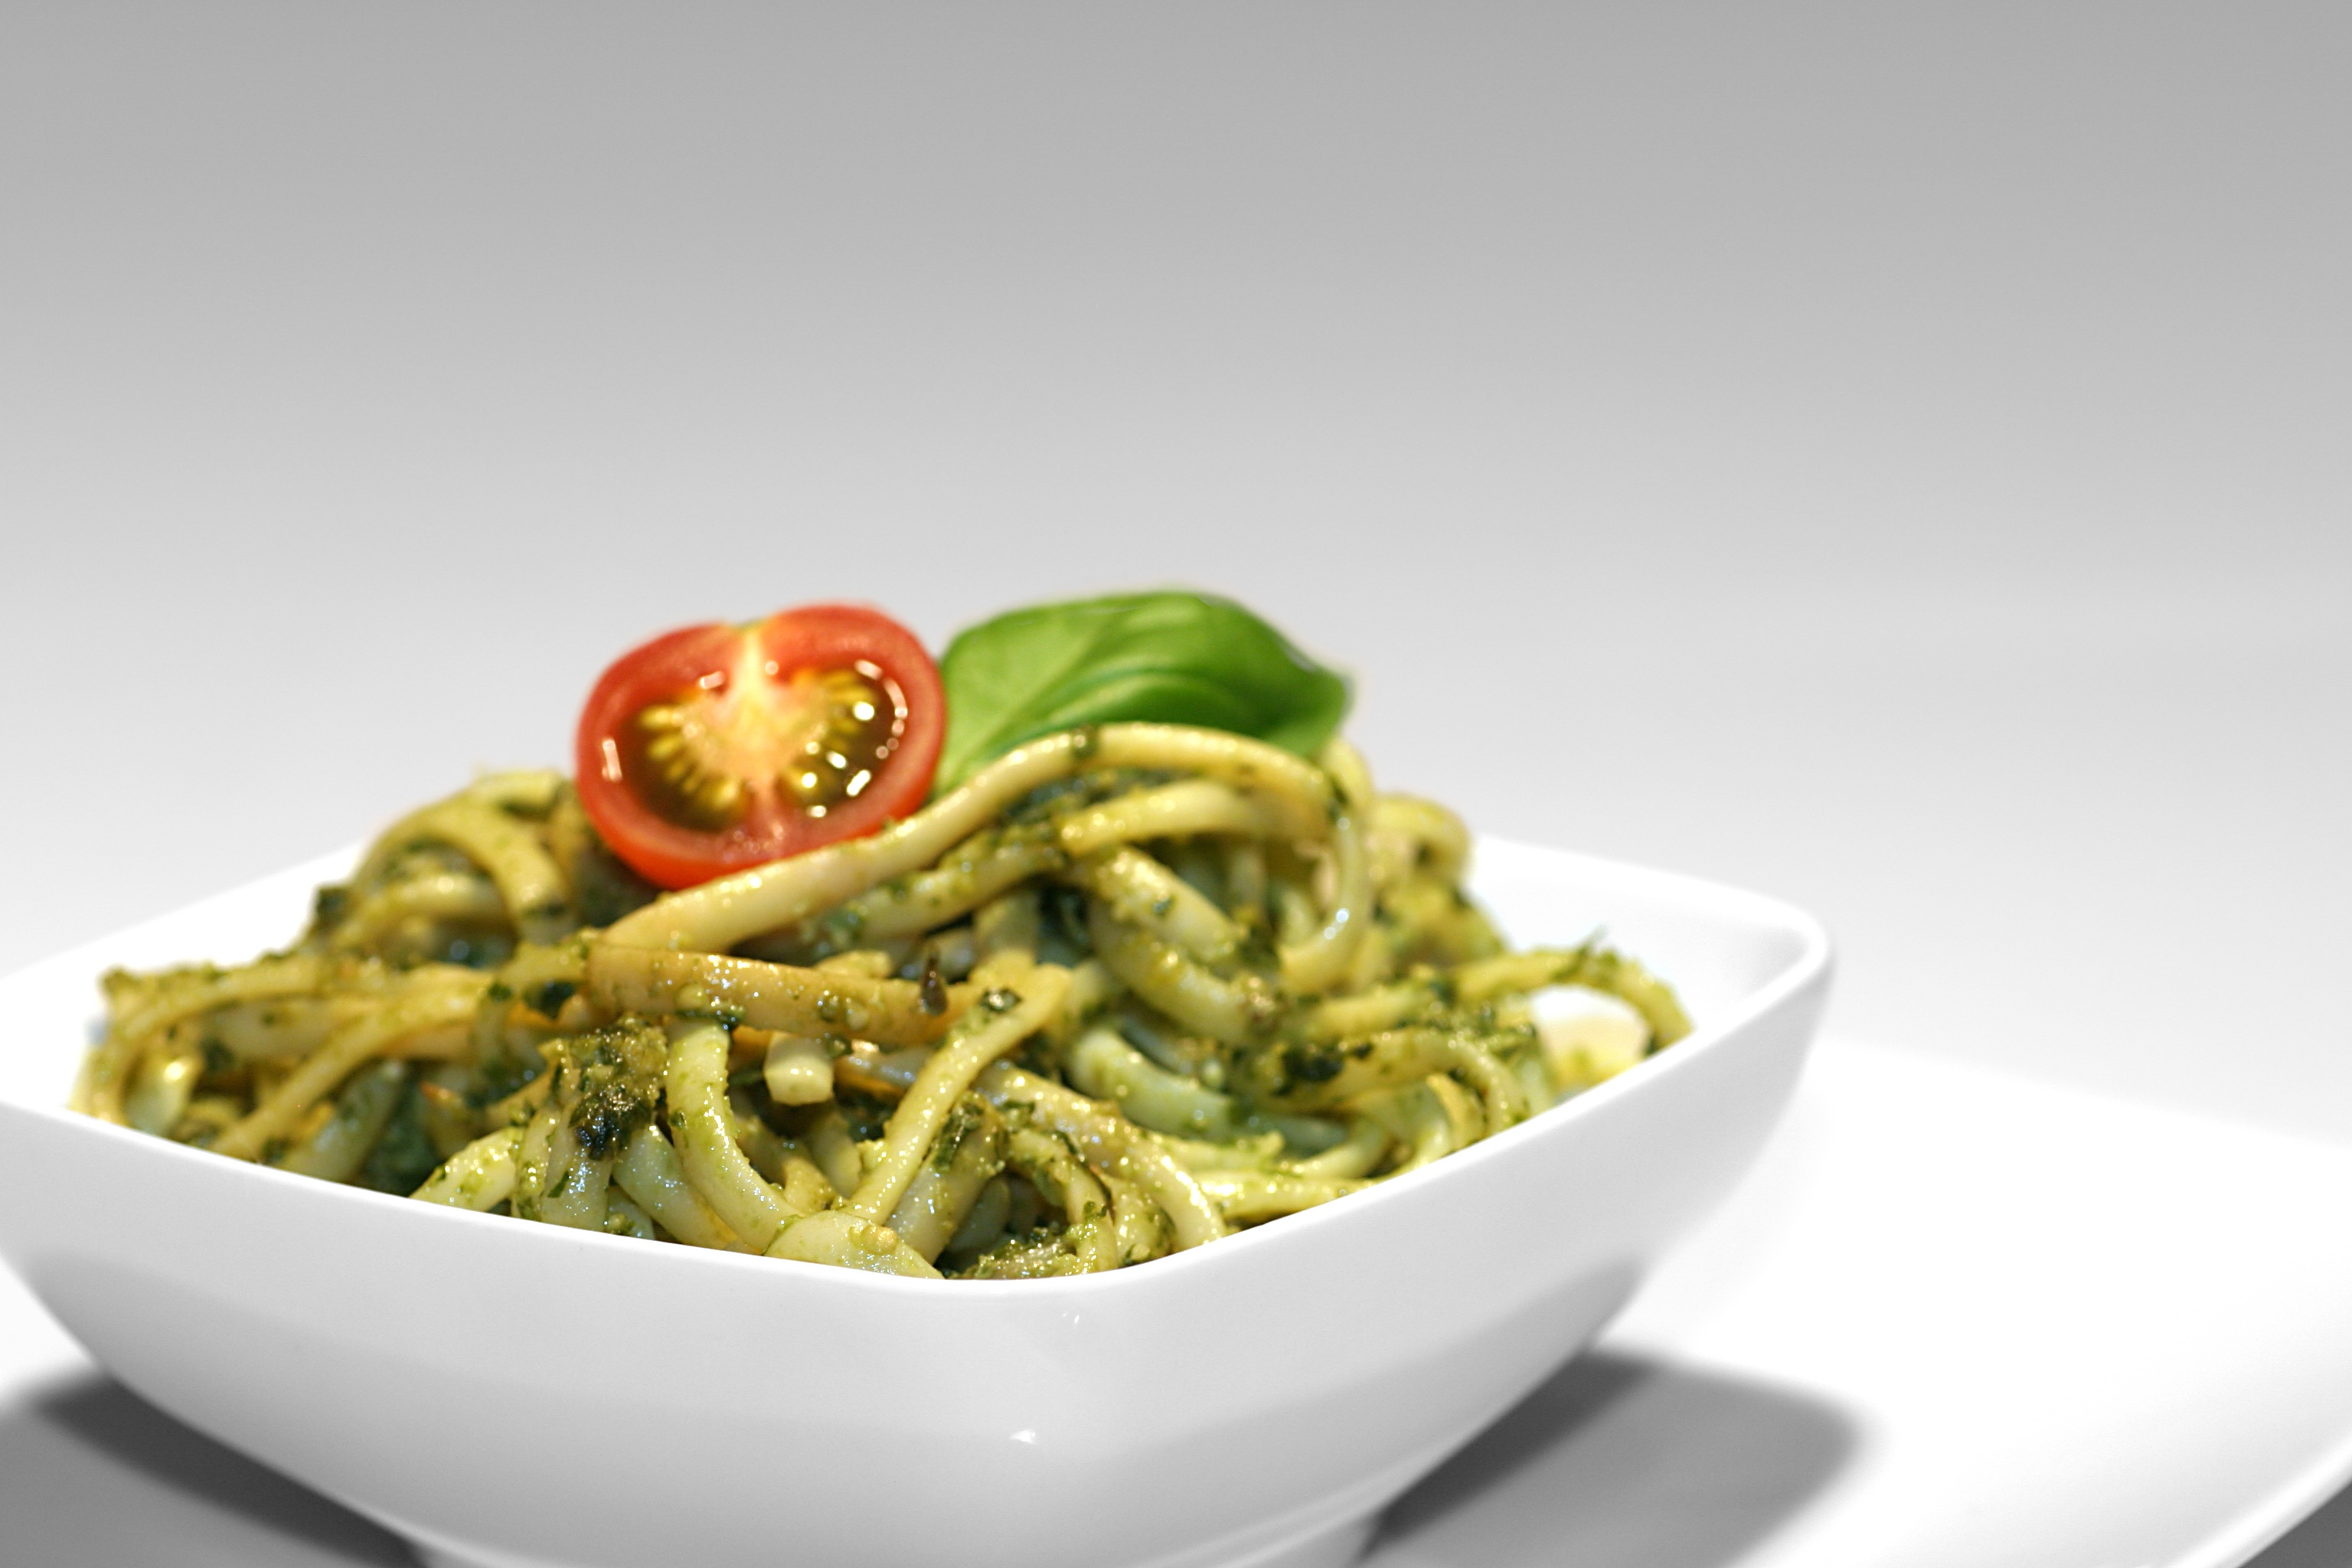 A fresh and simple arugula and walnut pesto recipe from my sisters at 1970 Dogwood Street